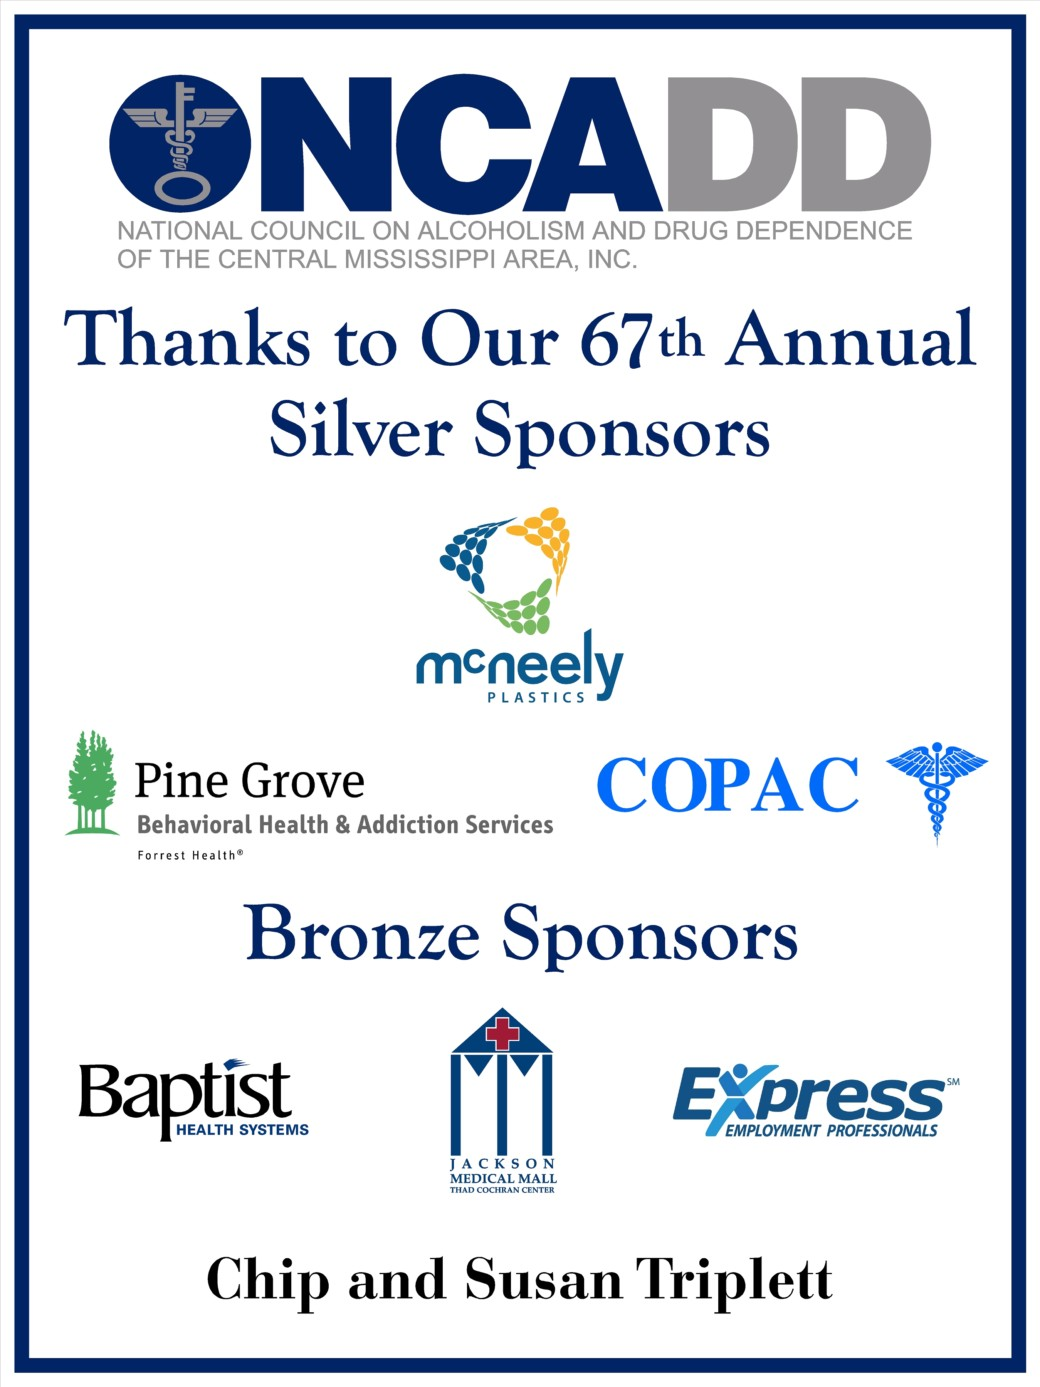 Thanks to Our 67th Annual Sponsors